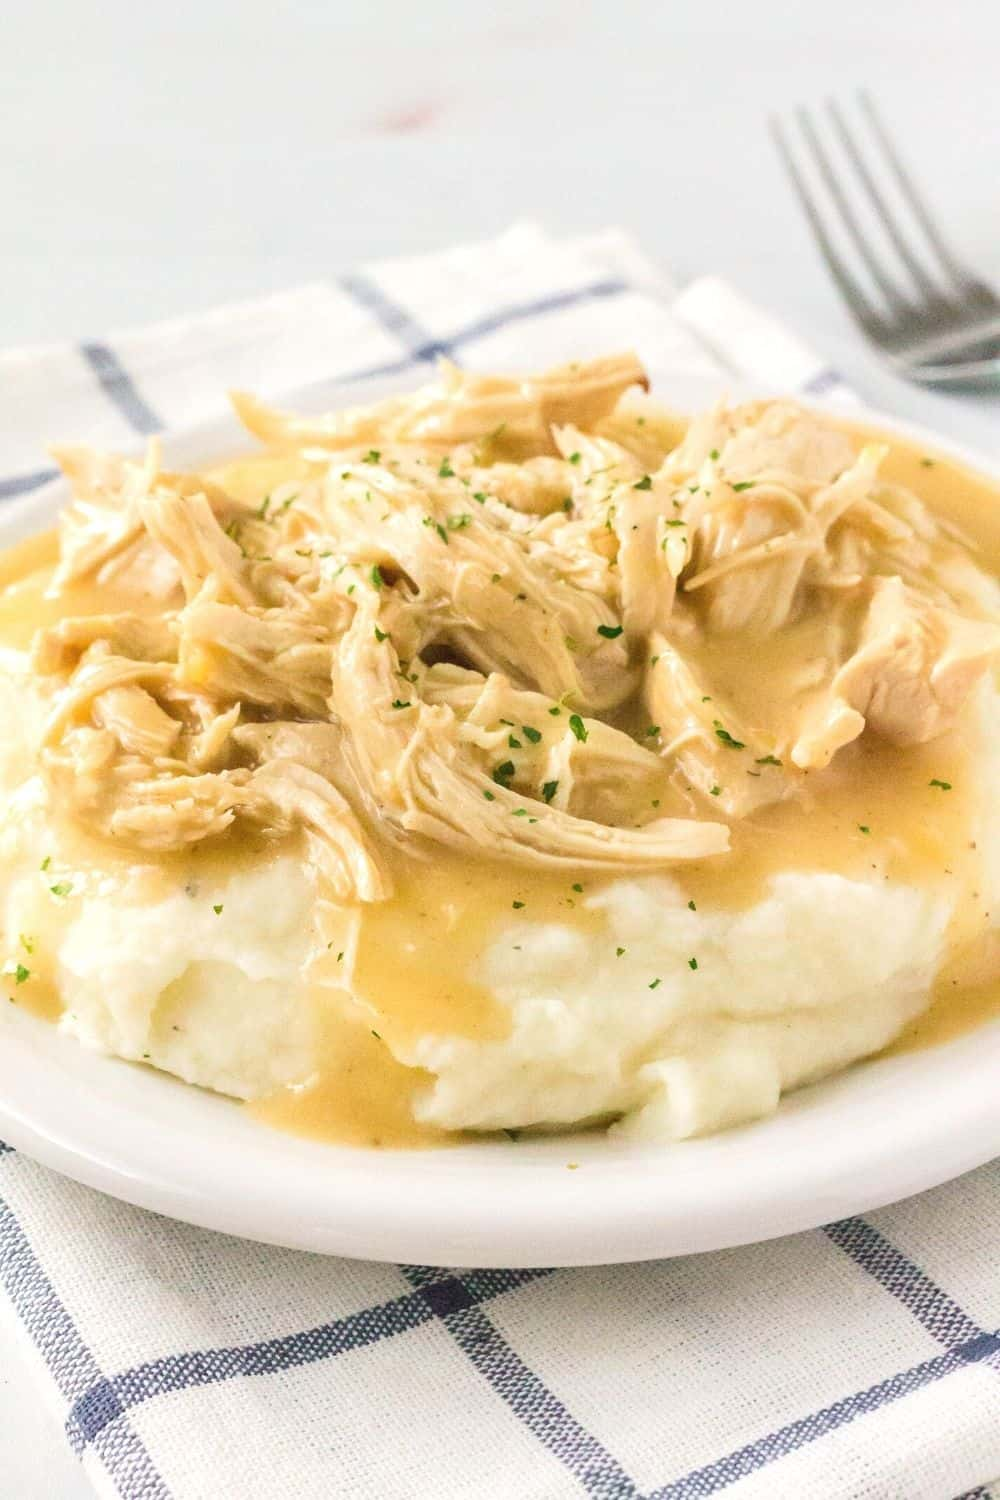 pressure cooker chicken and gravy served over mashed potatoes on a white plate, atop a blue and white napkin